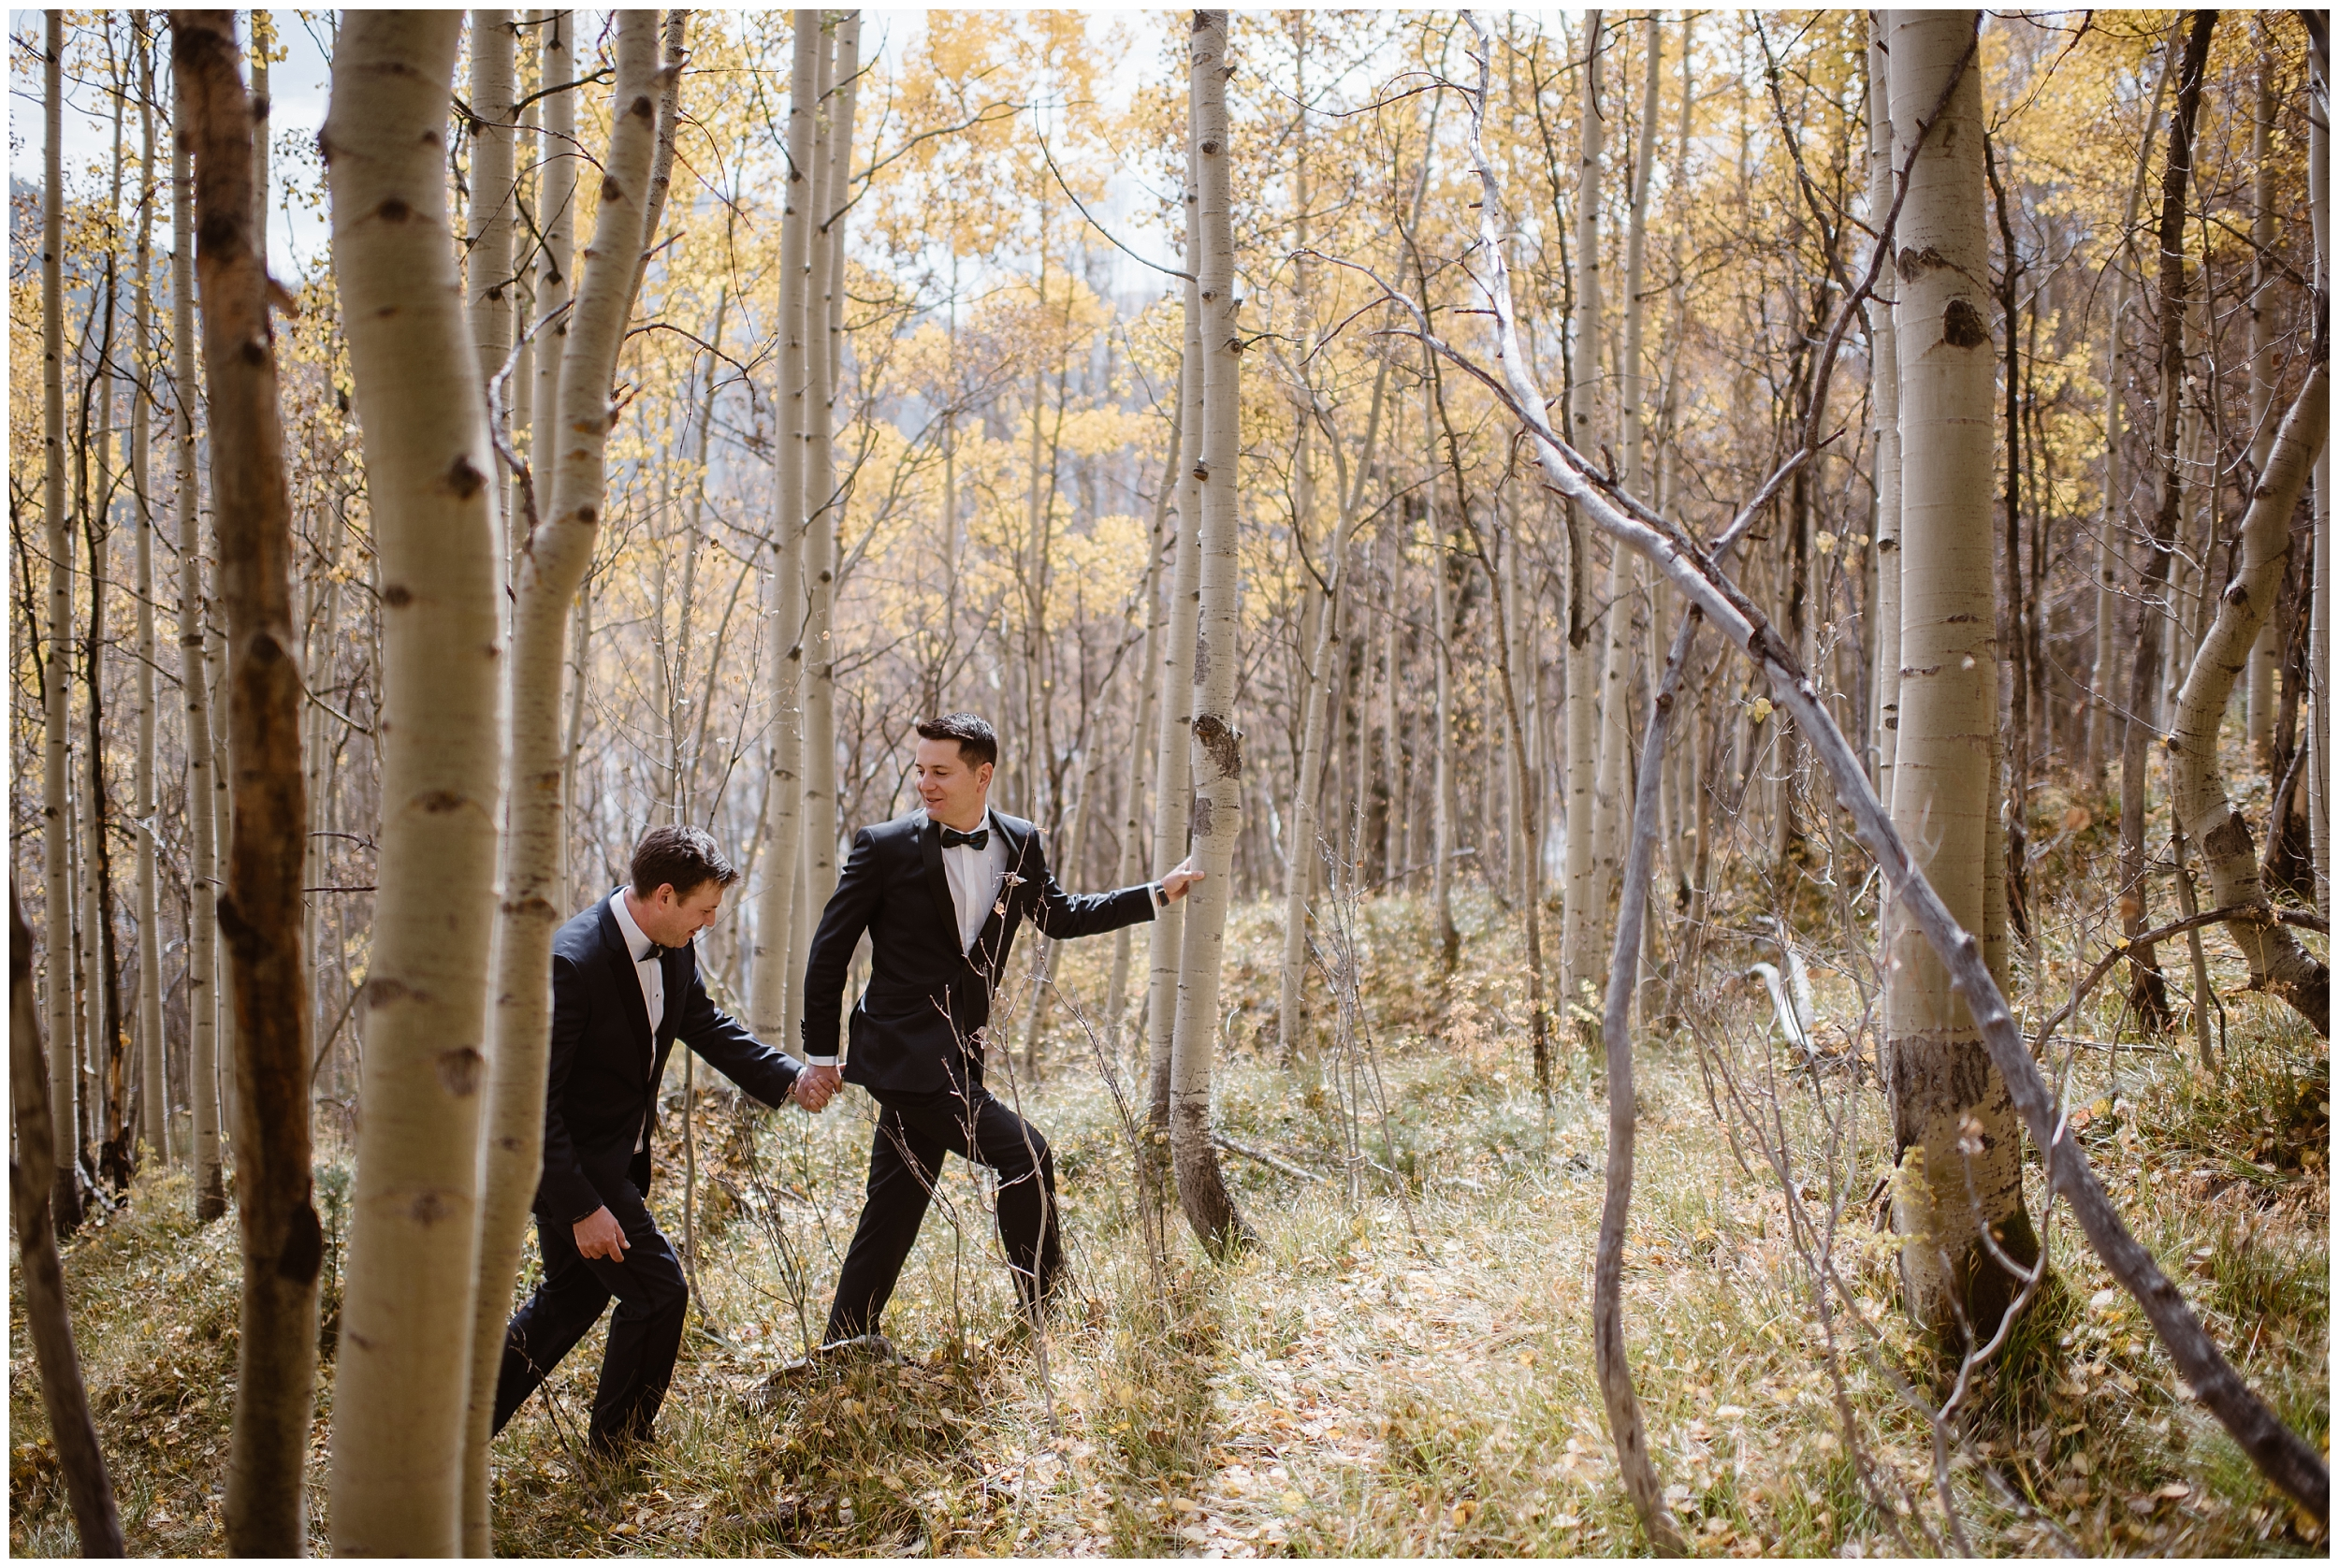 Brian and Ernie, the grooms, traipse through an aspen forest during their Colorado mountain elopement. This LBGTQ wedding was held in Ouray, Colorado and Brian and Ernie were able to implement all their unique eloping ideas into their elopement ceremony. They even eloped with immediate family!